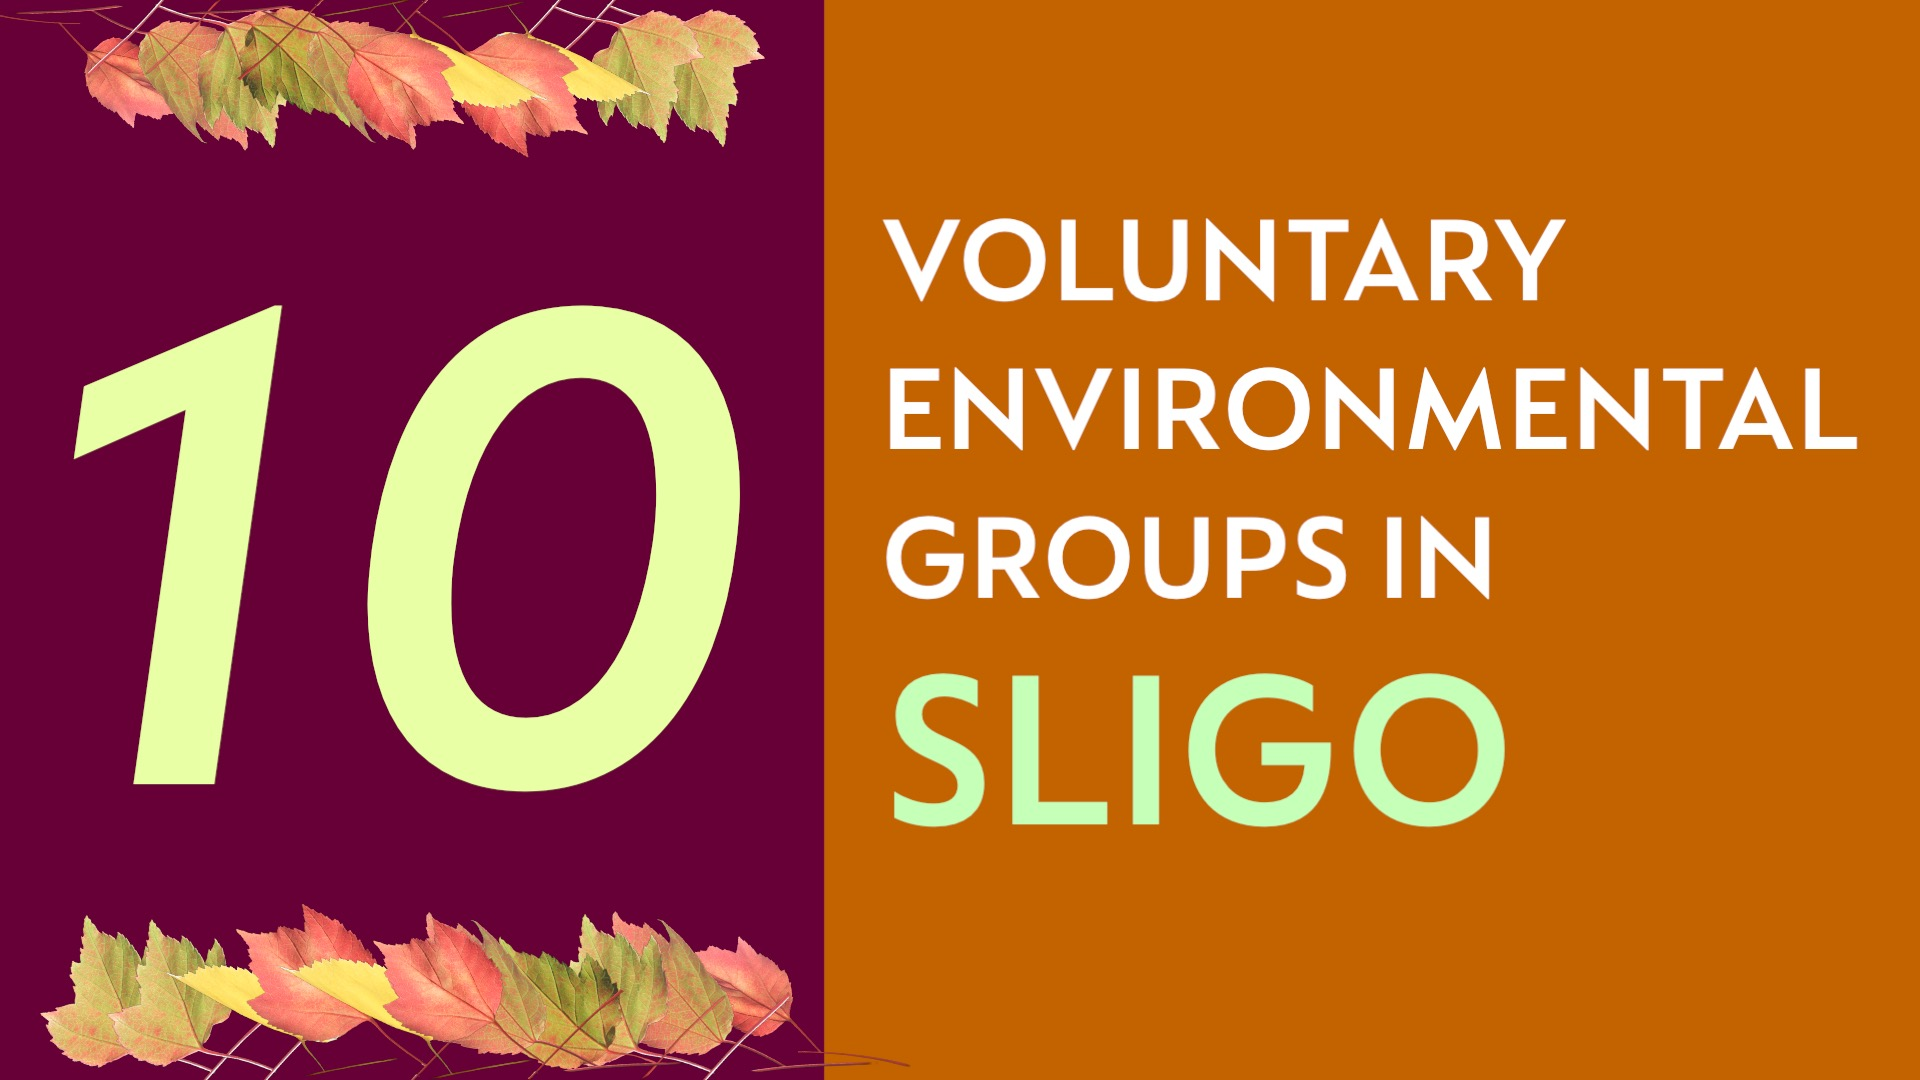 Blog 7 - Sligo's Environmental Community